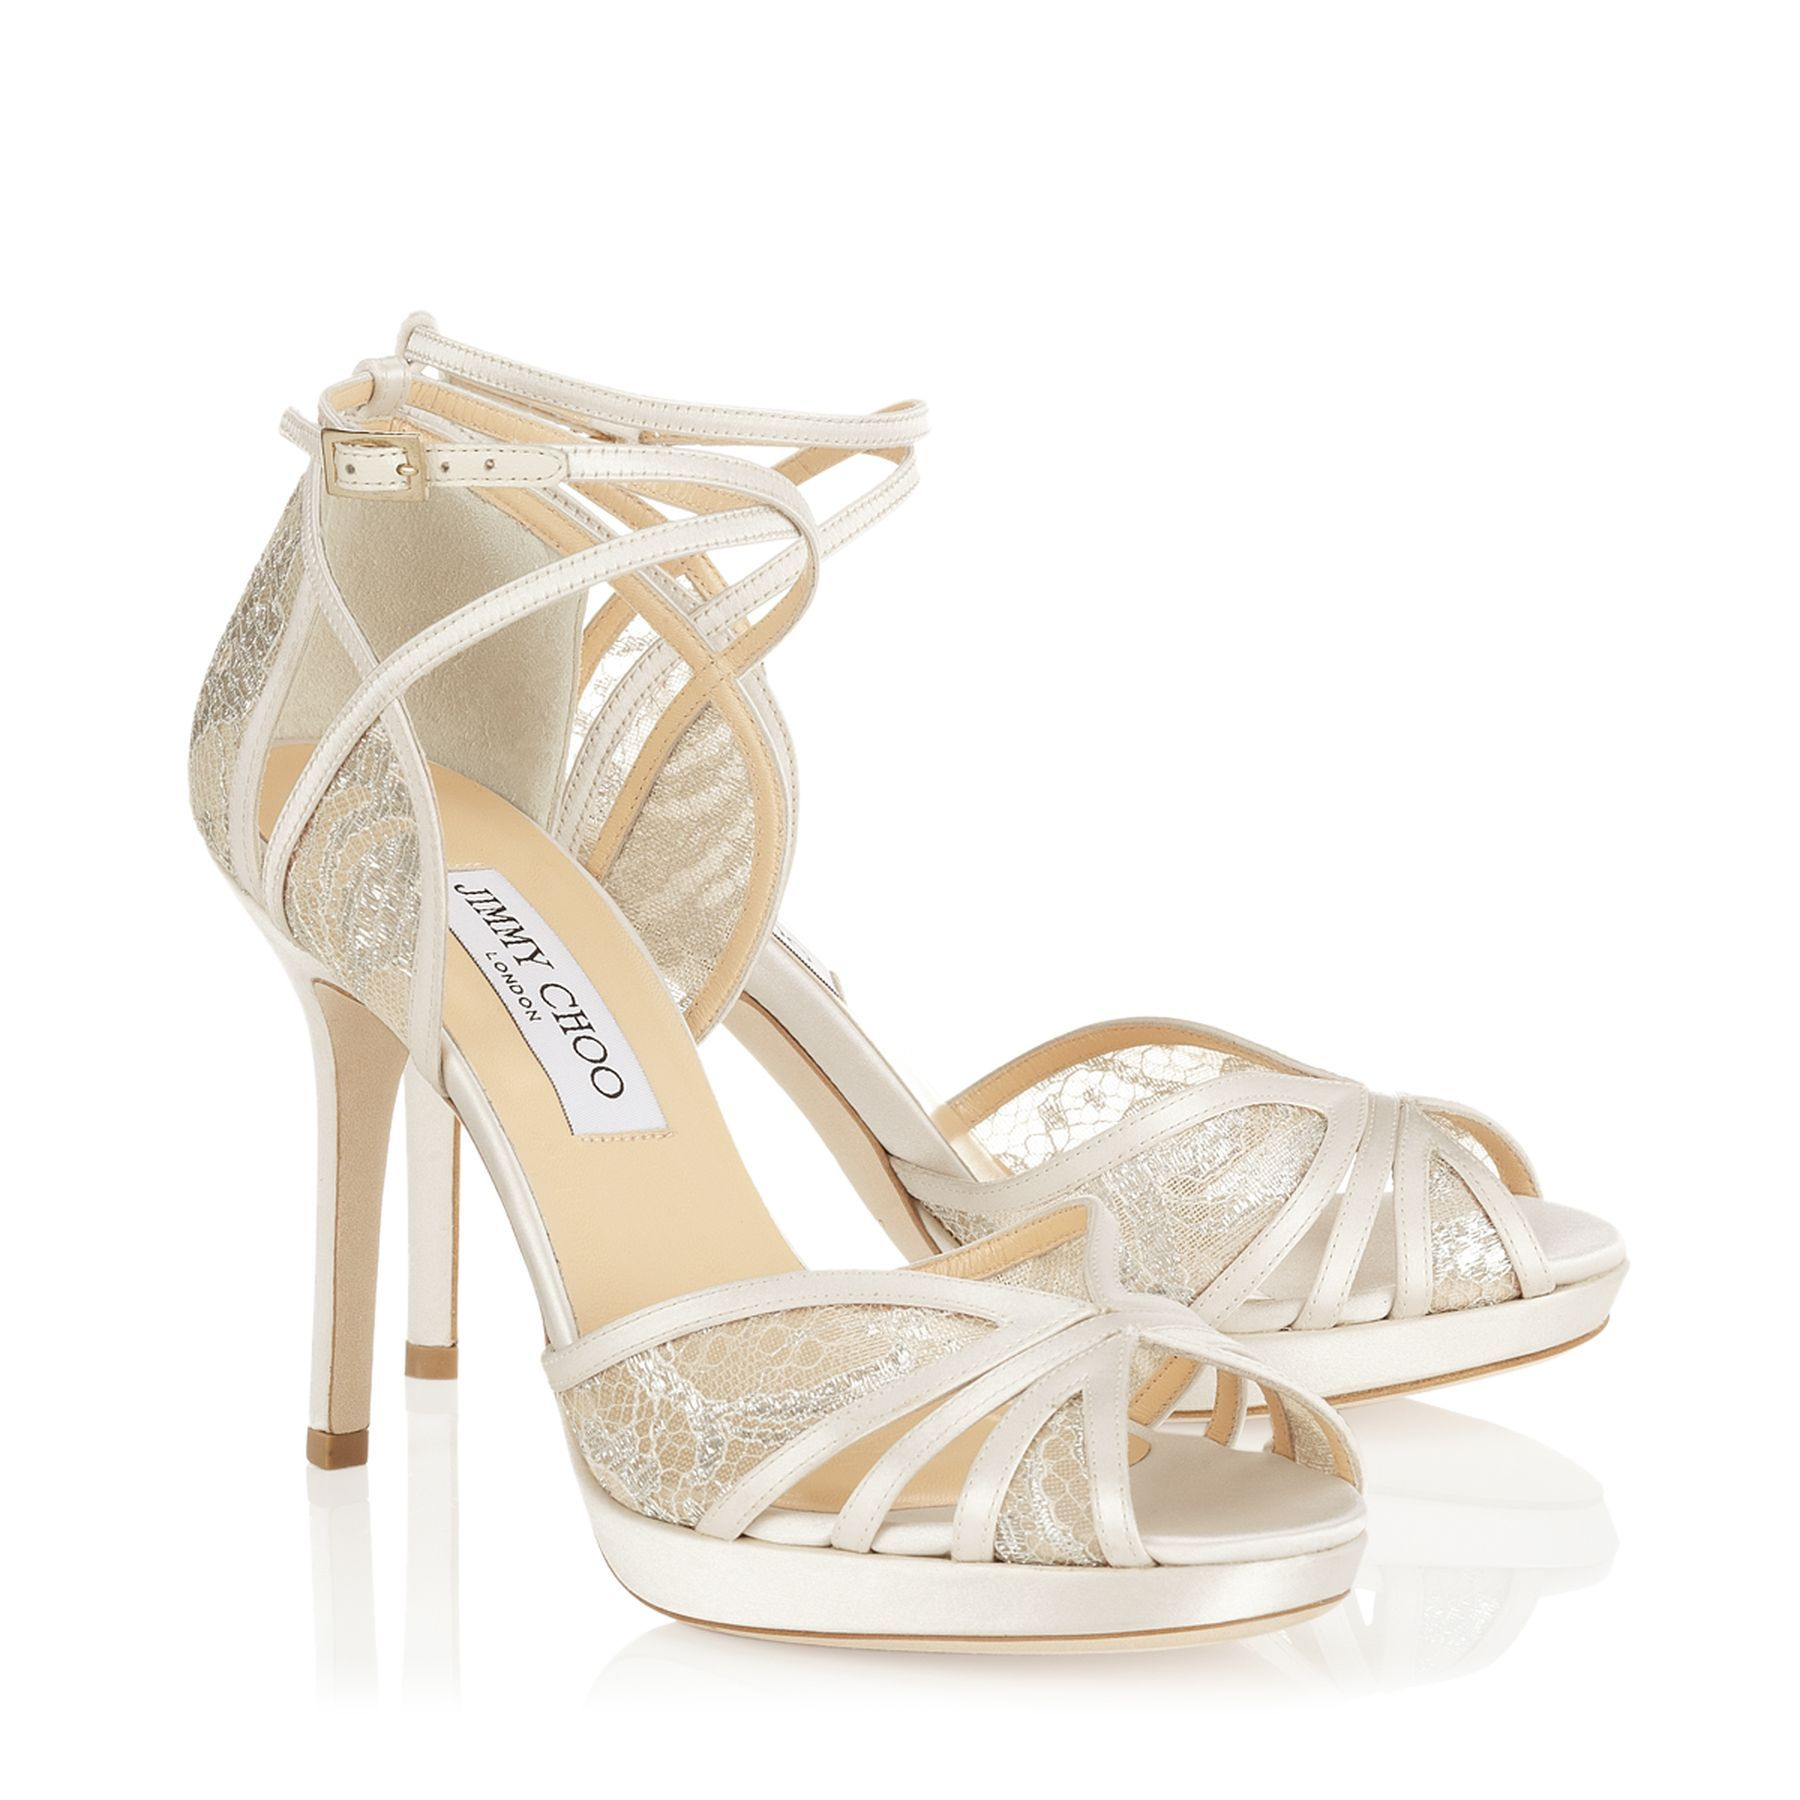 Ivory and White Satin Designer Sandals | Fable | Bridal | JIMMY CHOO Shoes